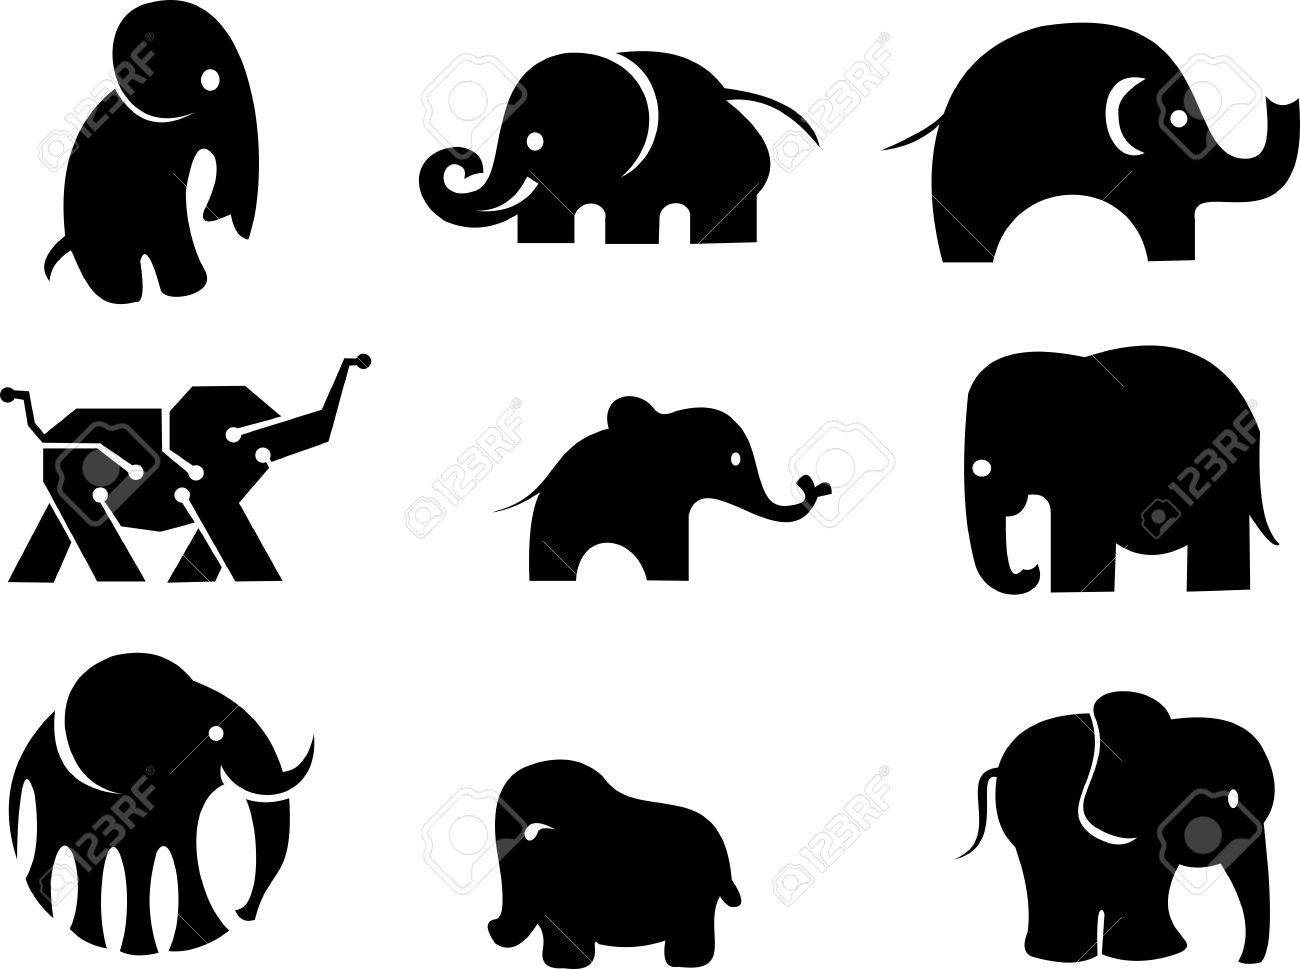 1300x969 Stock Logo Elephant Silhouette Royalty Free Cliparts, Vectors,